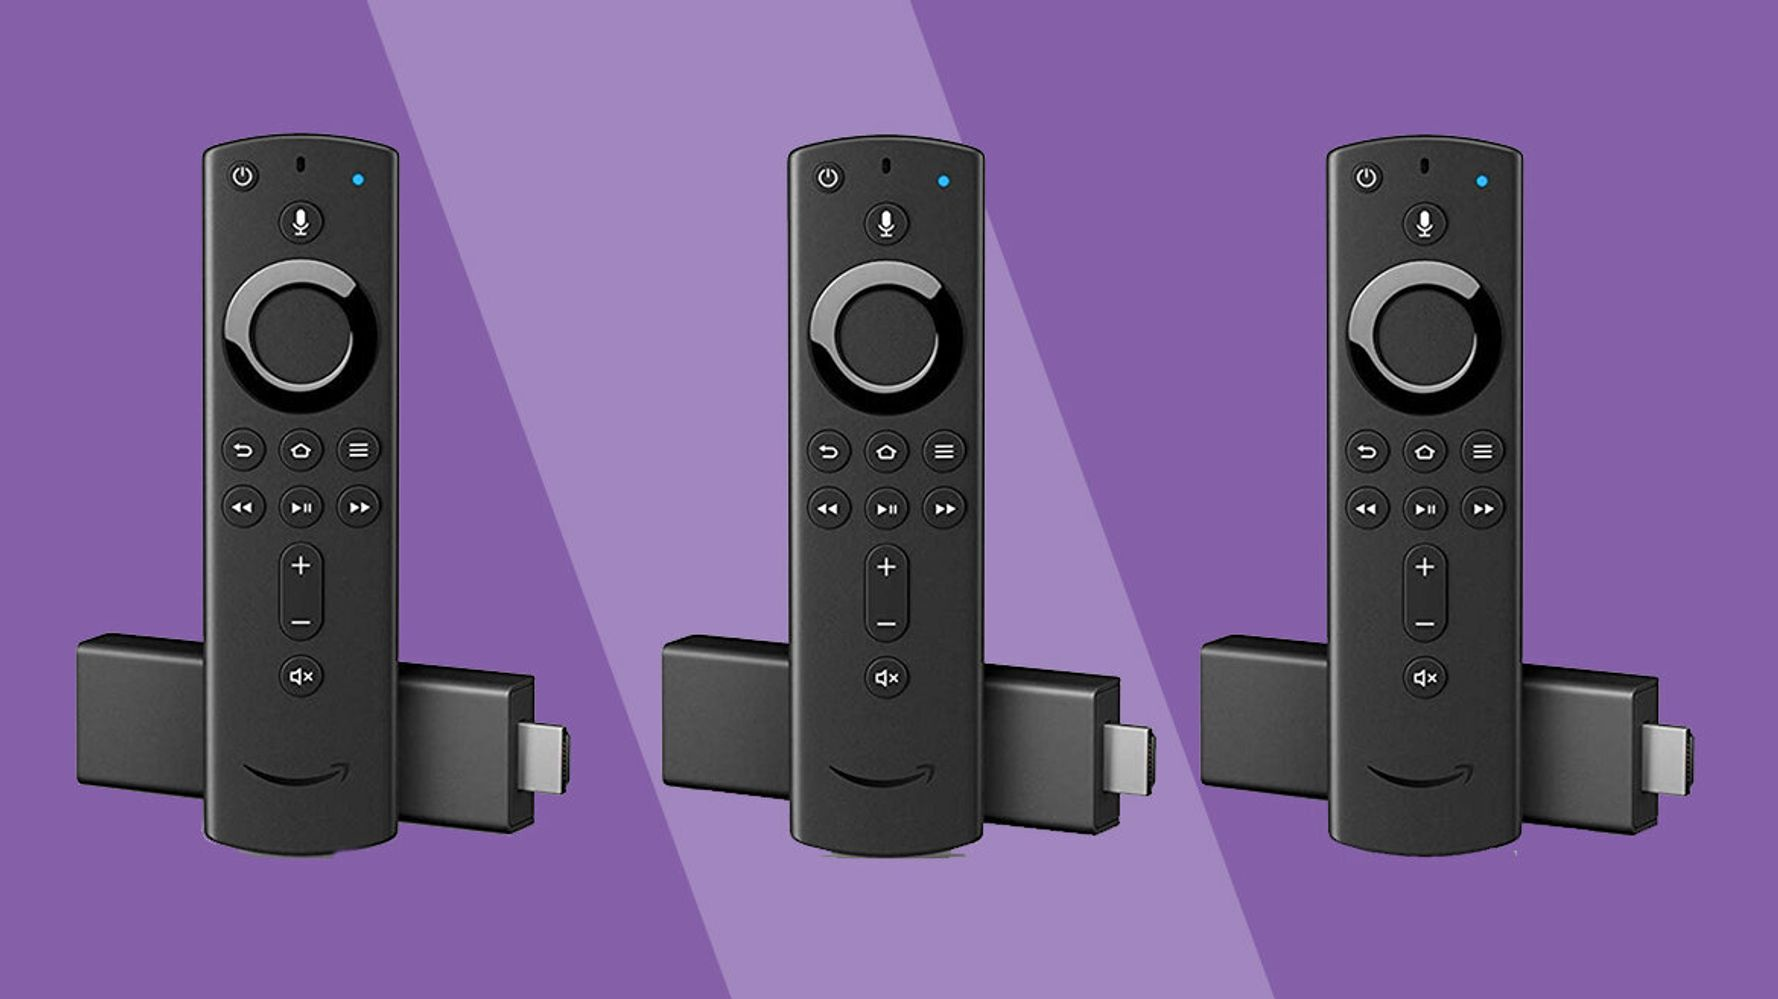 Amazon S 4k Fire Tv Stick Black Friday Deal Is The Best Since Prime Day 2019 Huffpost Uk Life